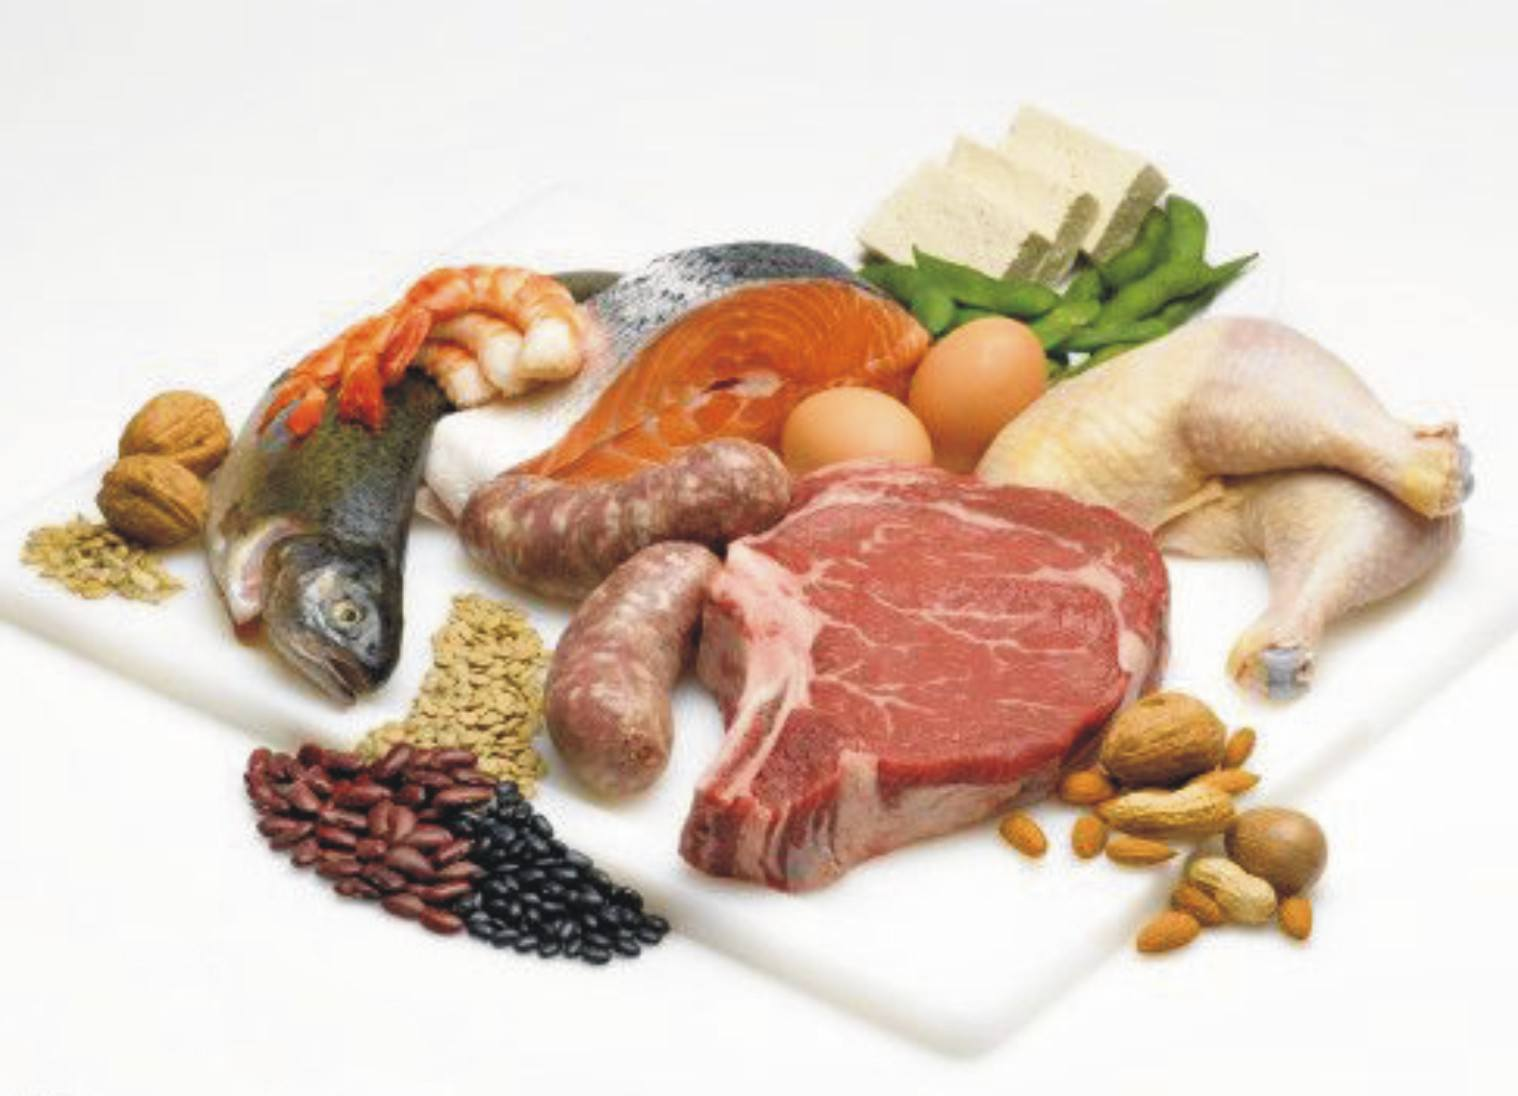 The Protein Guide: How Much Protein Do You Need?